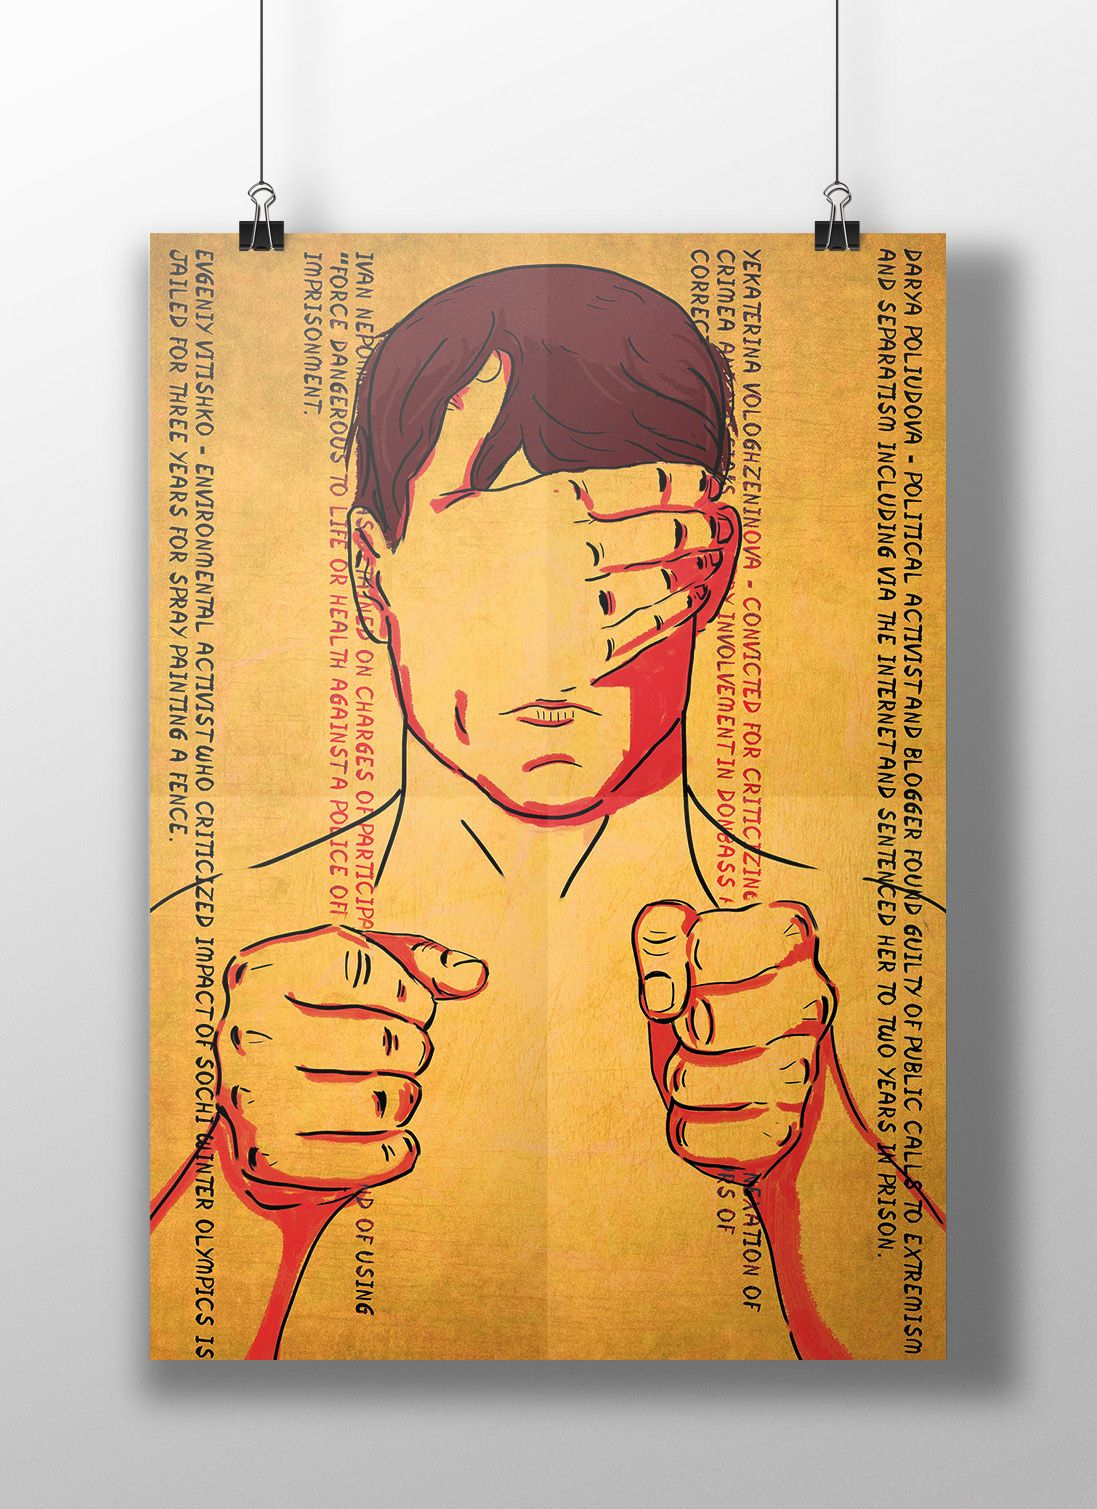 FREEDOM OF SPEECH - Posters - Single Posters - Red Dot 21 ... |Freedom Of Speech Poster Ideas